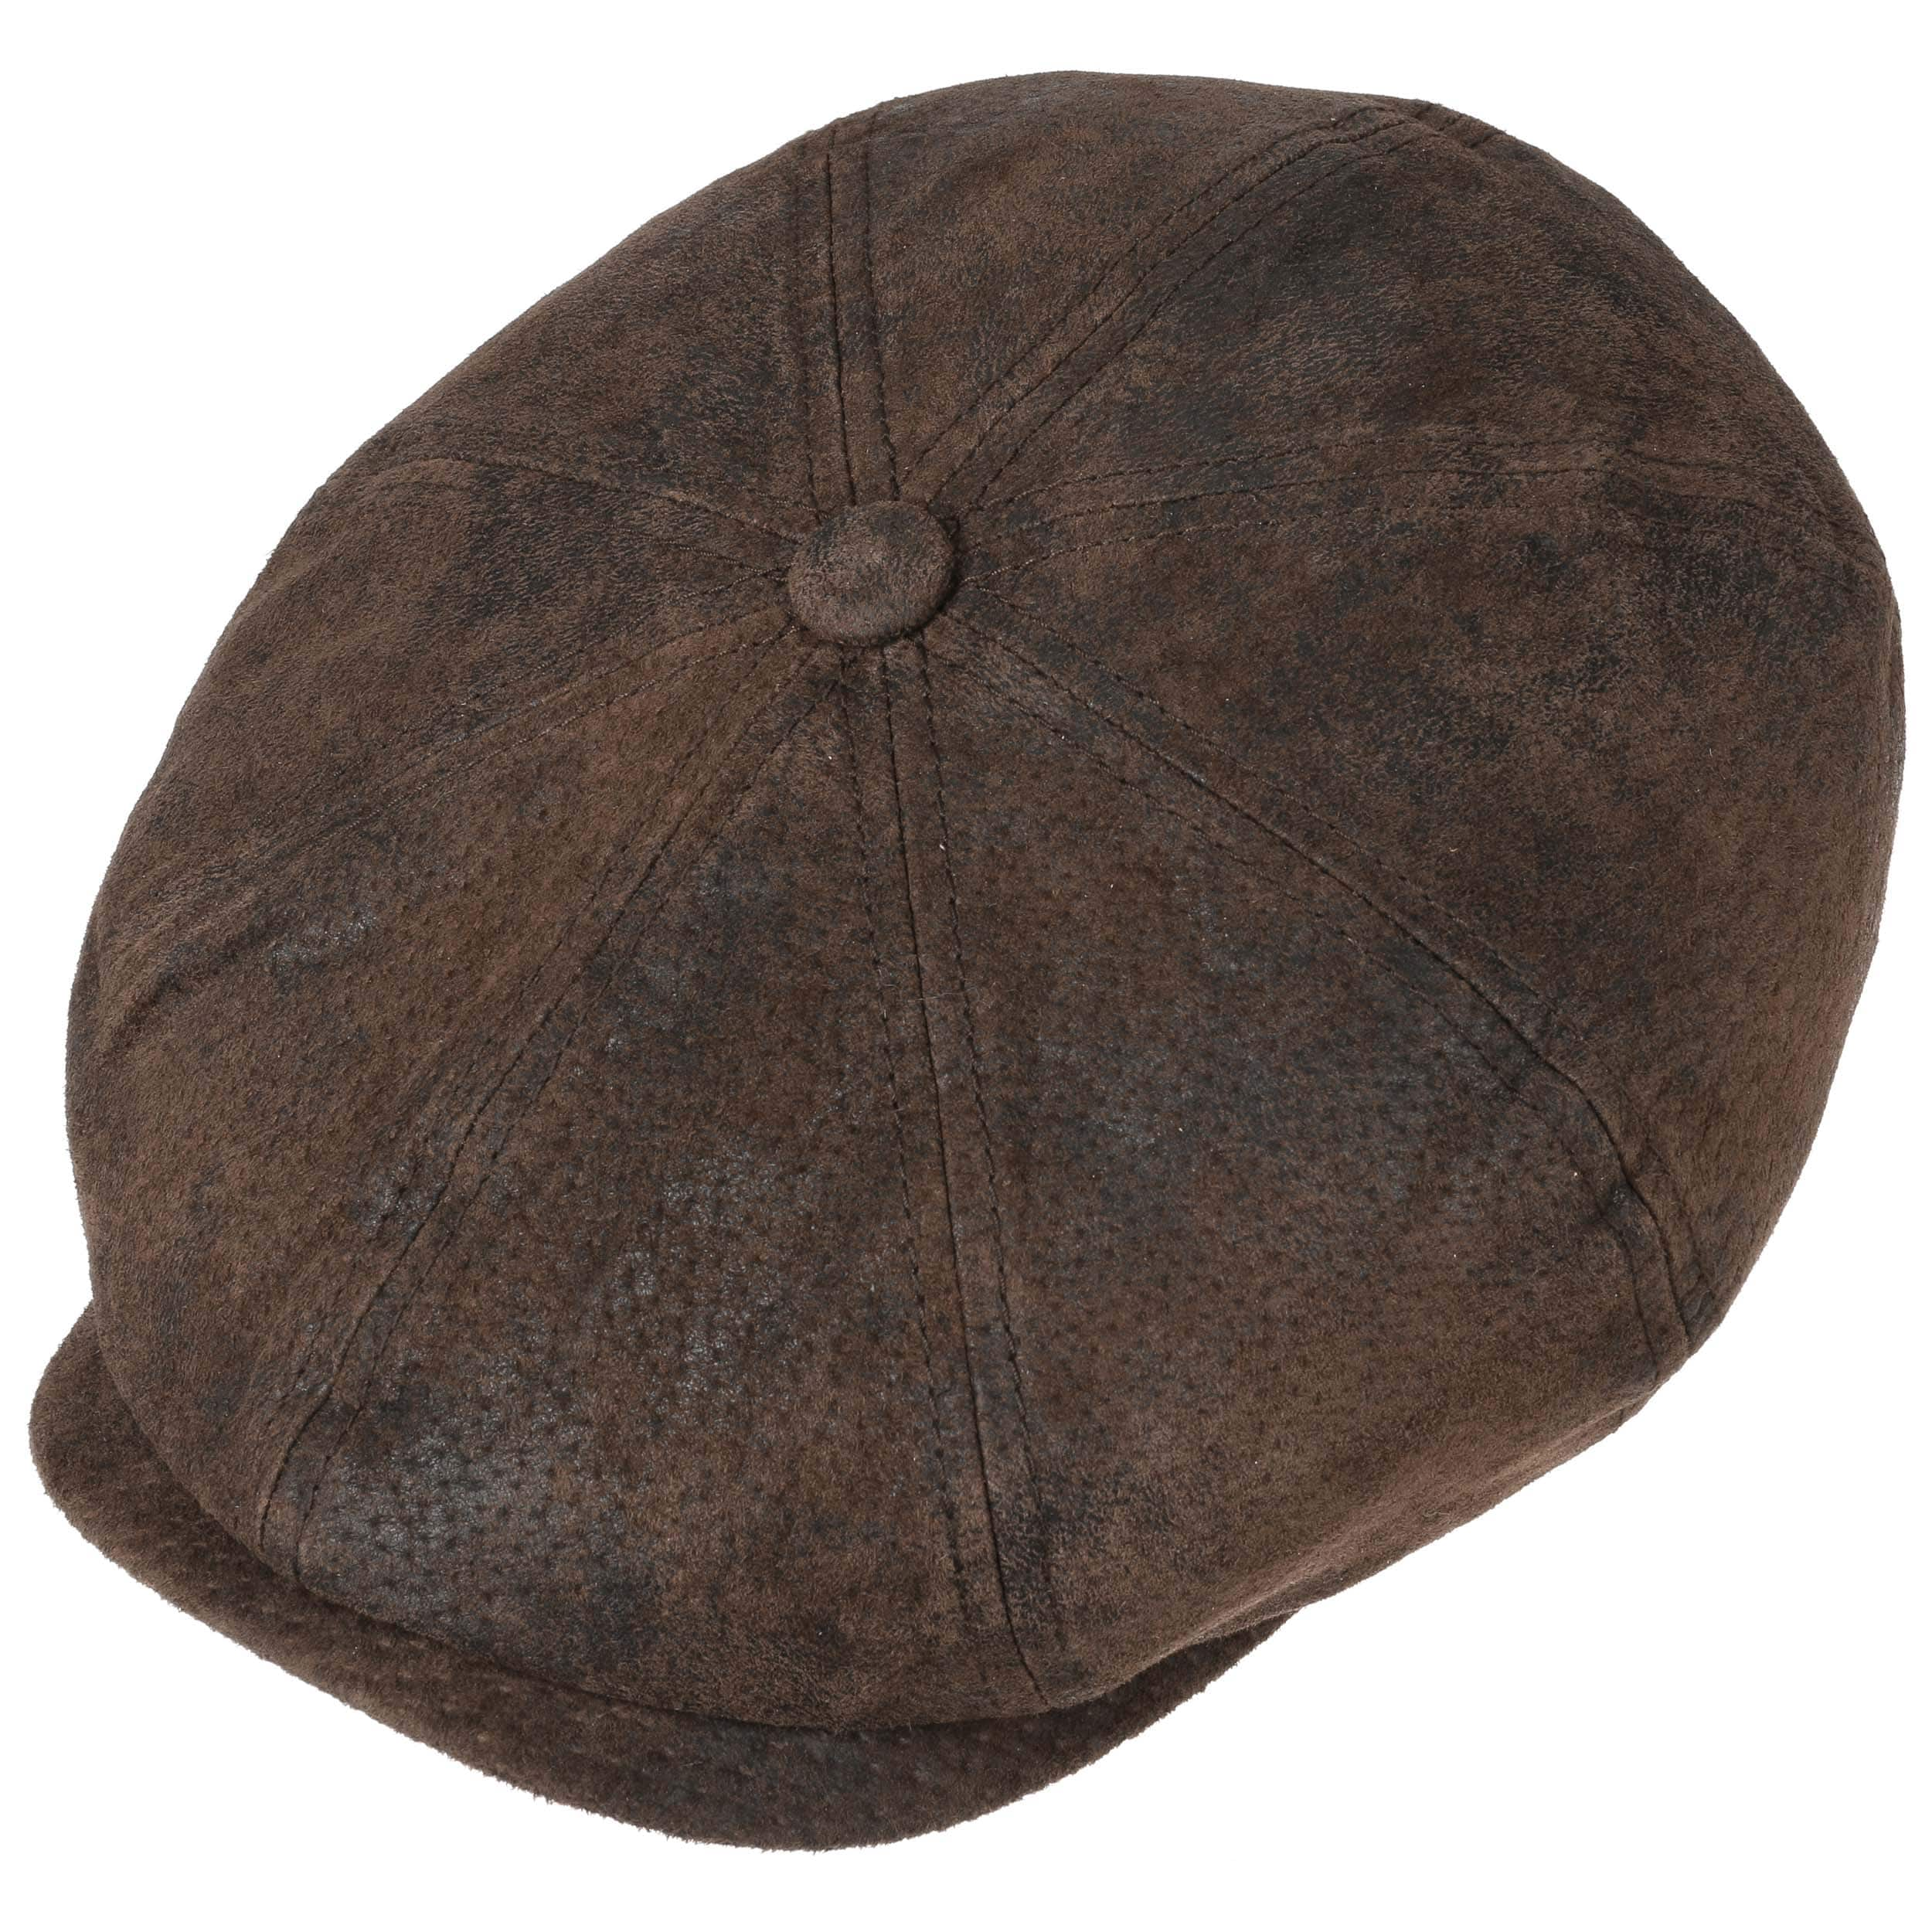 5d13b68b Hatteras Pigskin Leather Cap by Stetson - brown 1 ...